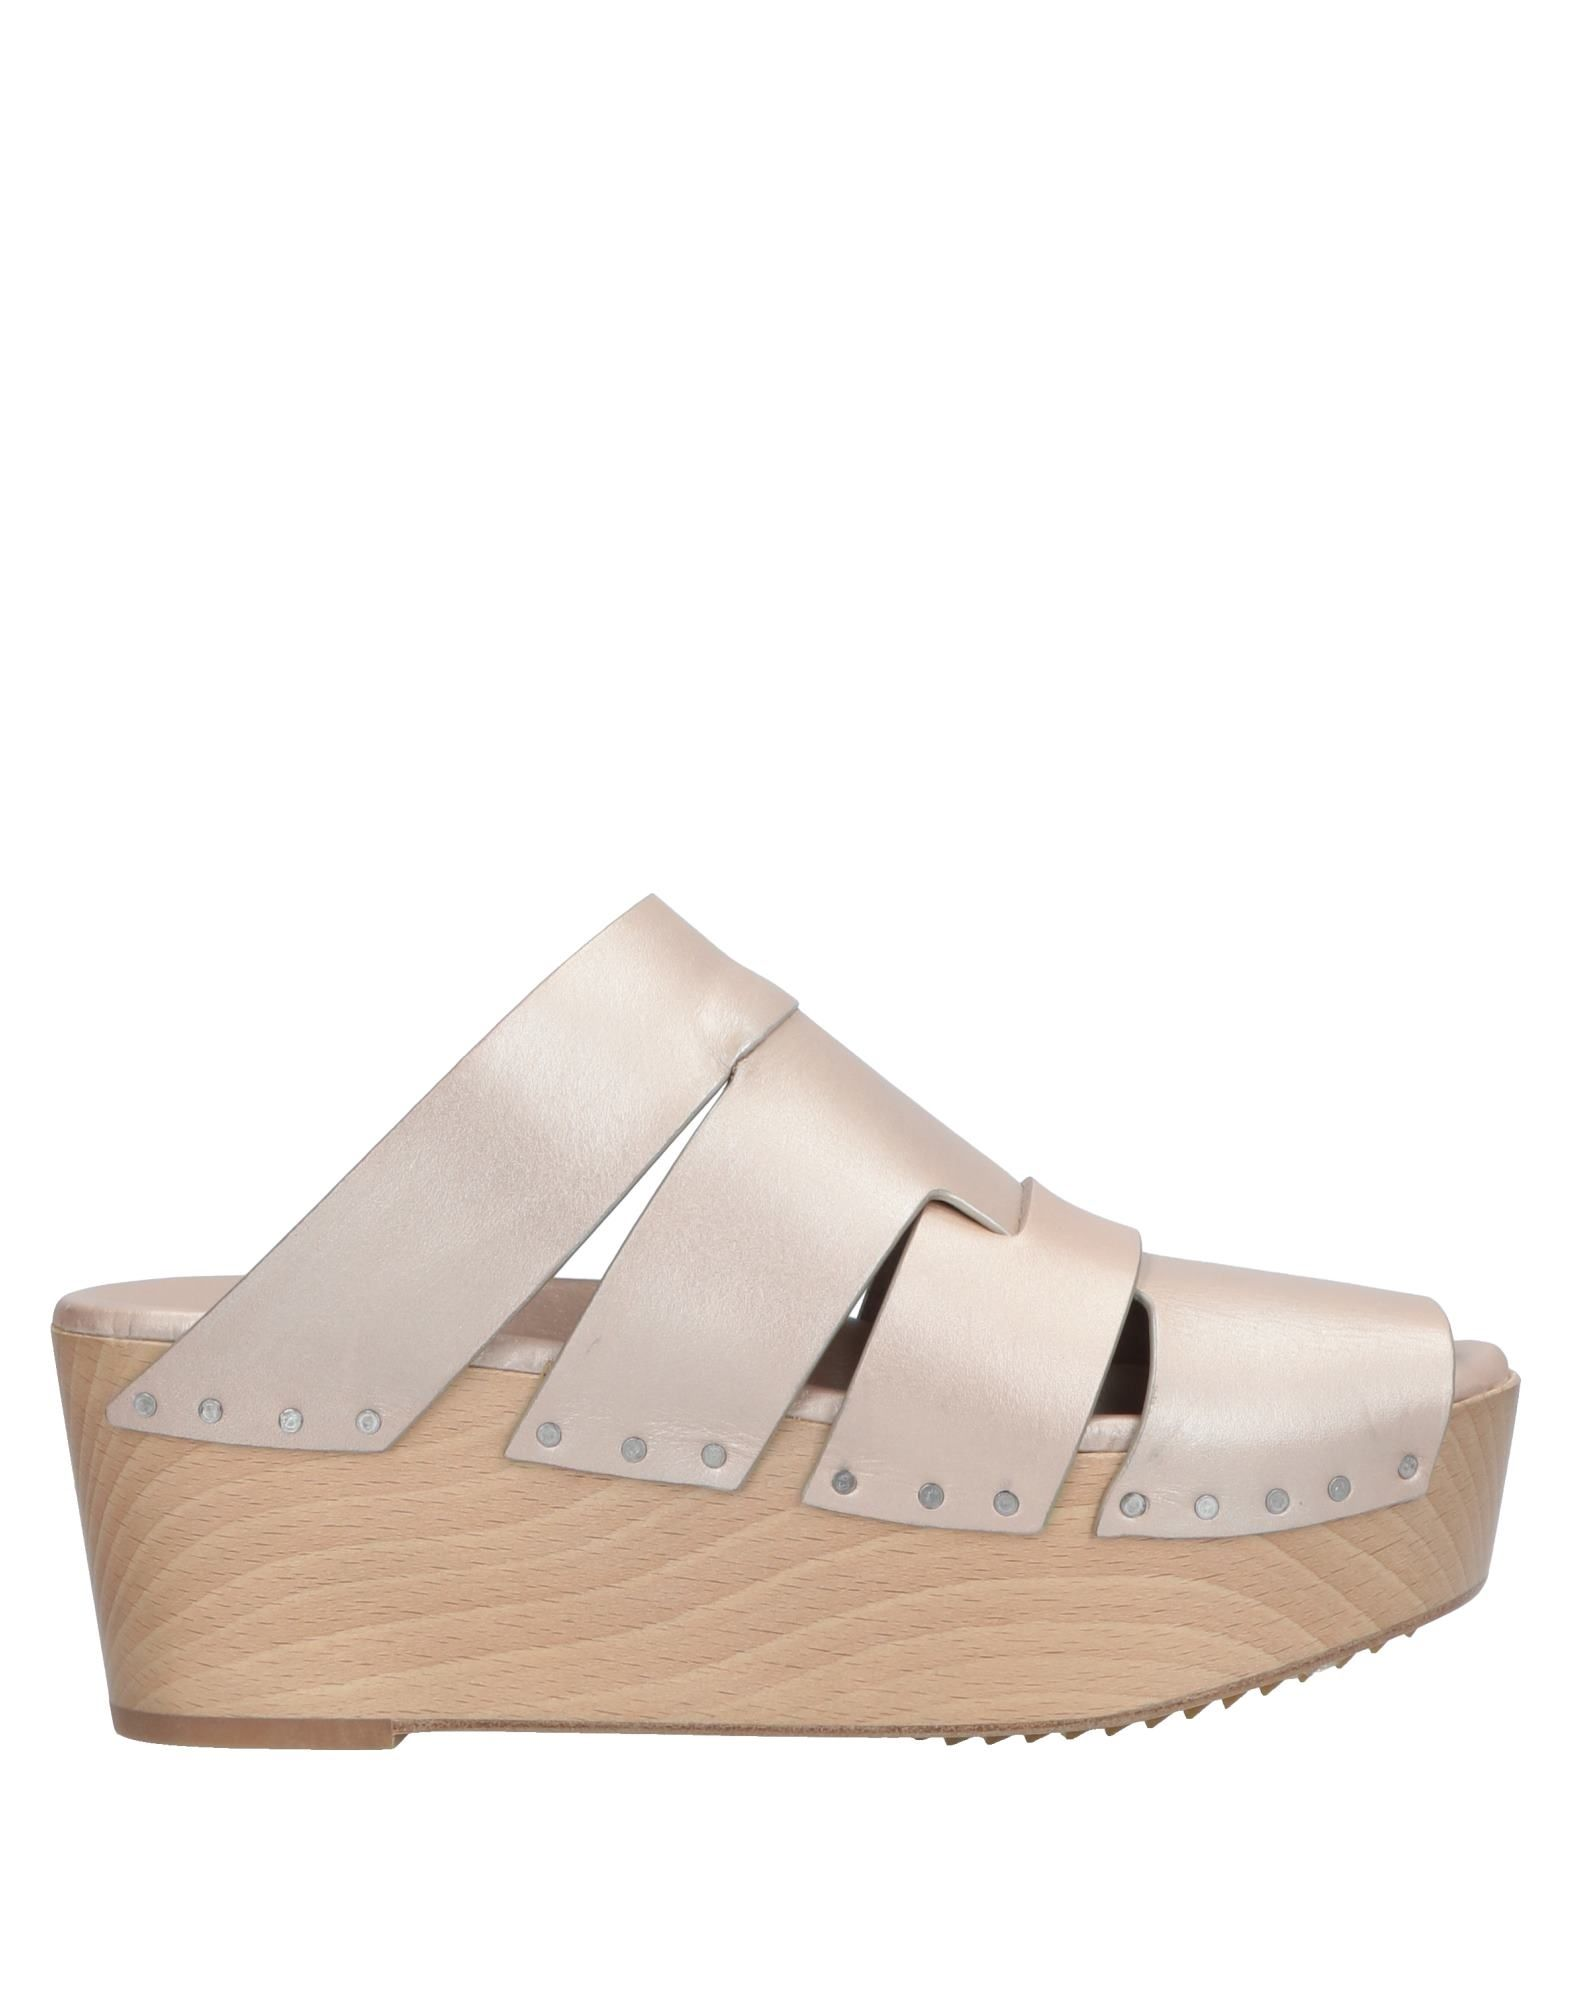 RICK OWENS Mules. no appliqués, solid color, round toeline, wedge heel, wooden wedge, leather lining, leather/rubber sole, contains non-textile parts of animal origin. Soft Leather